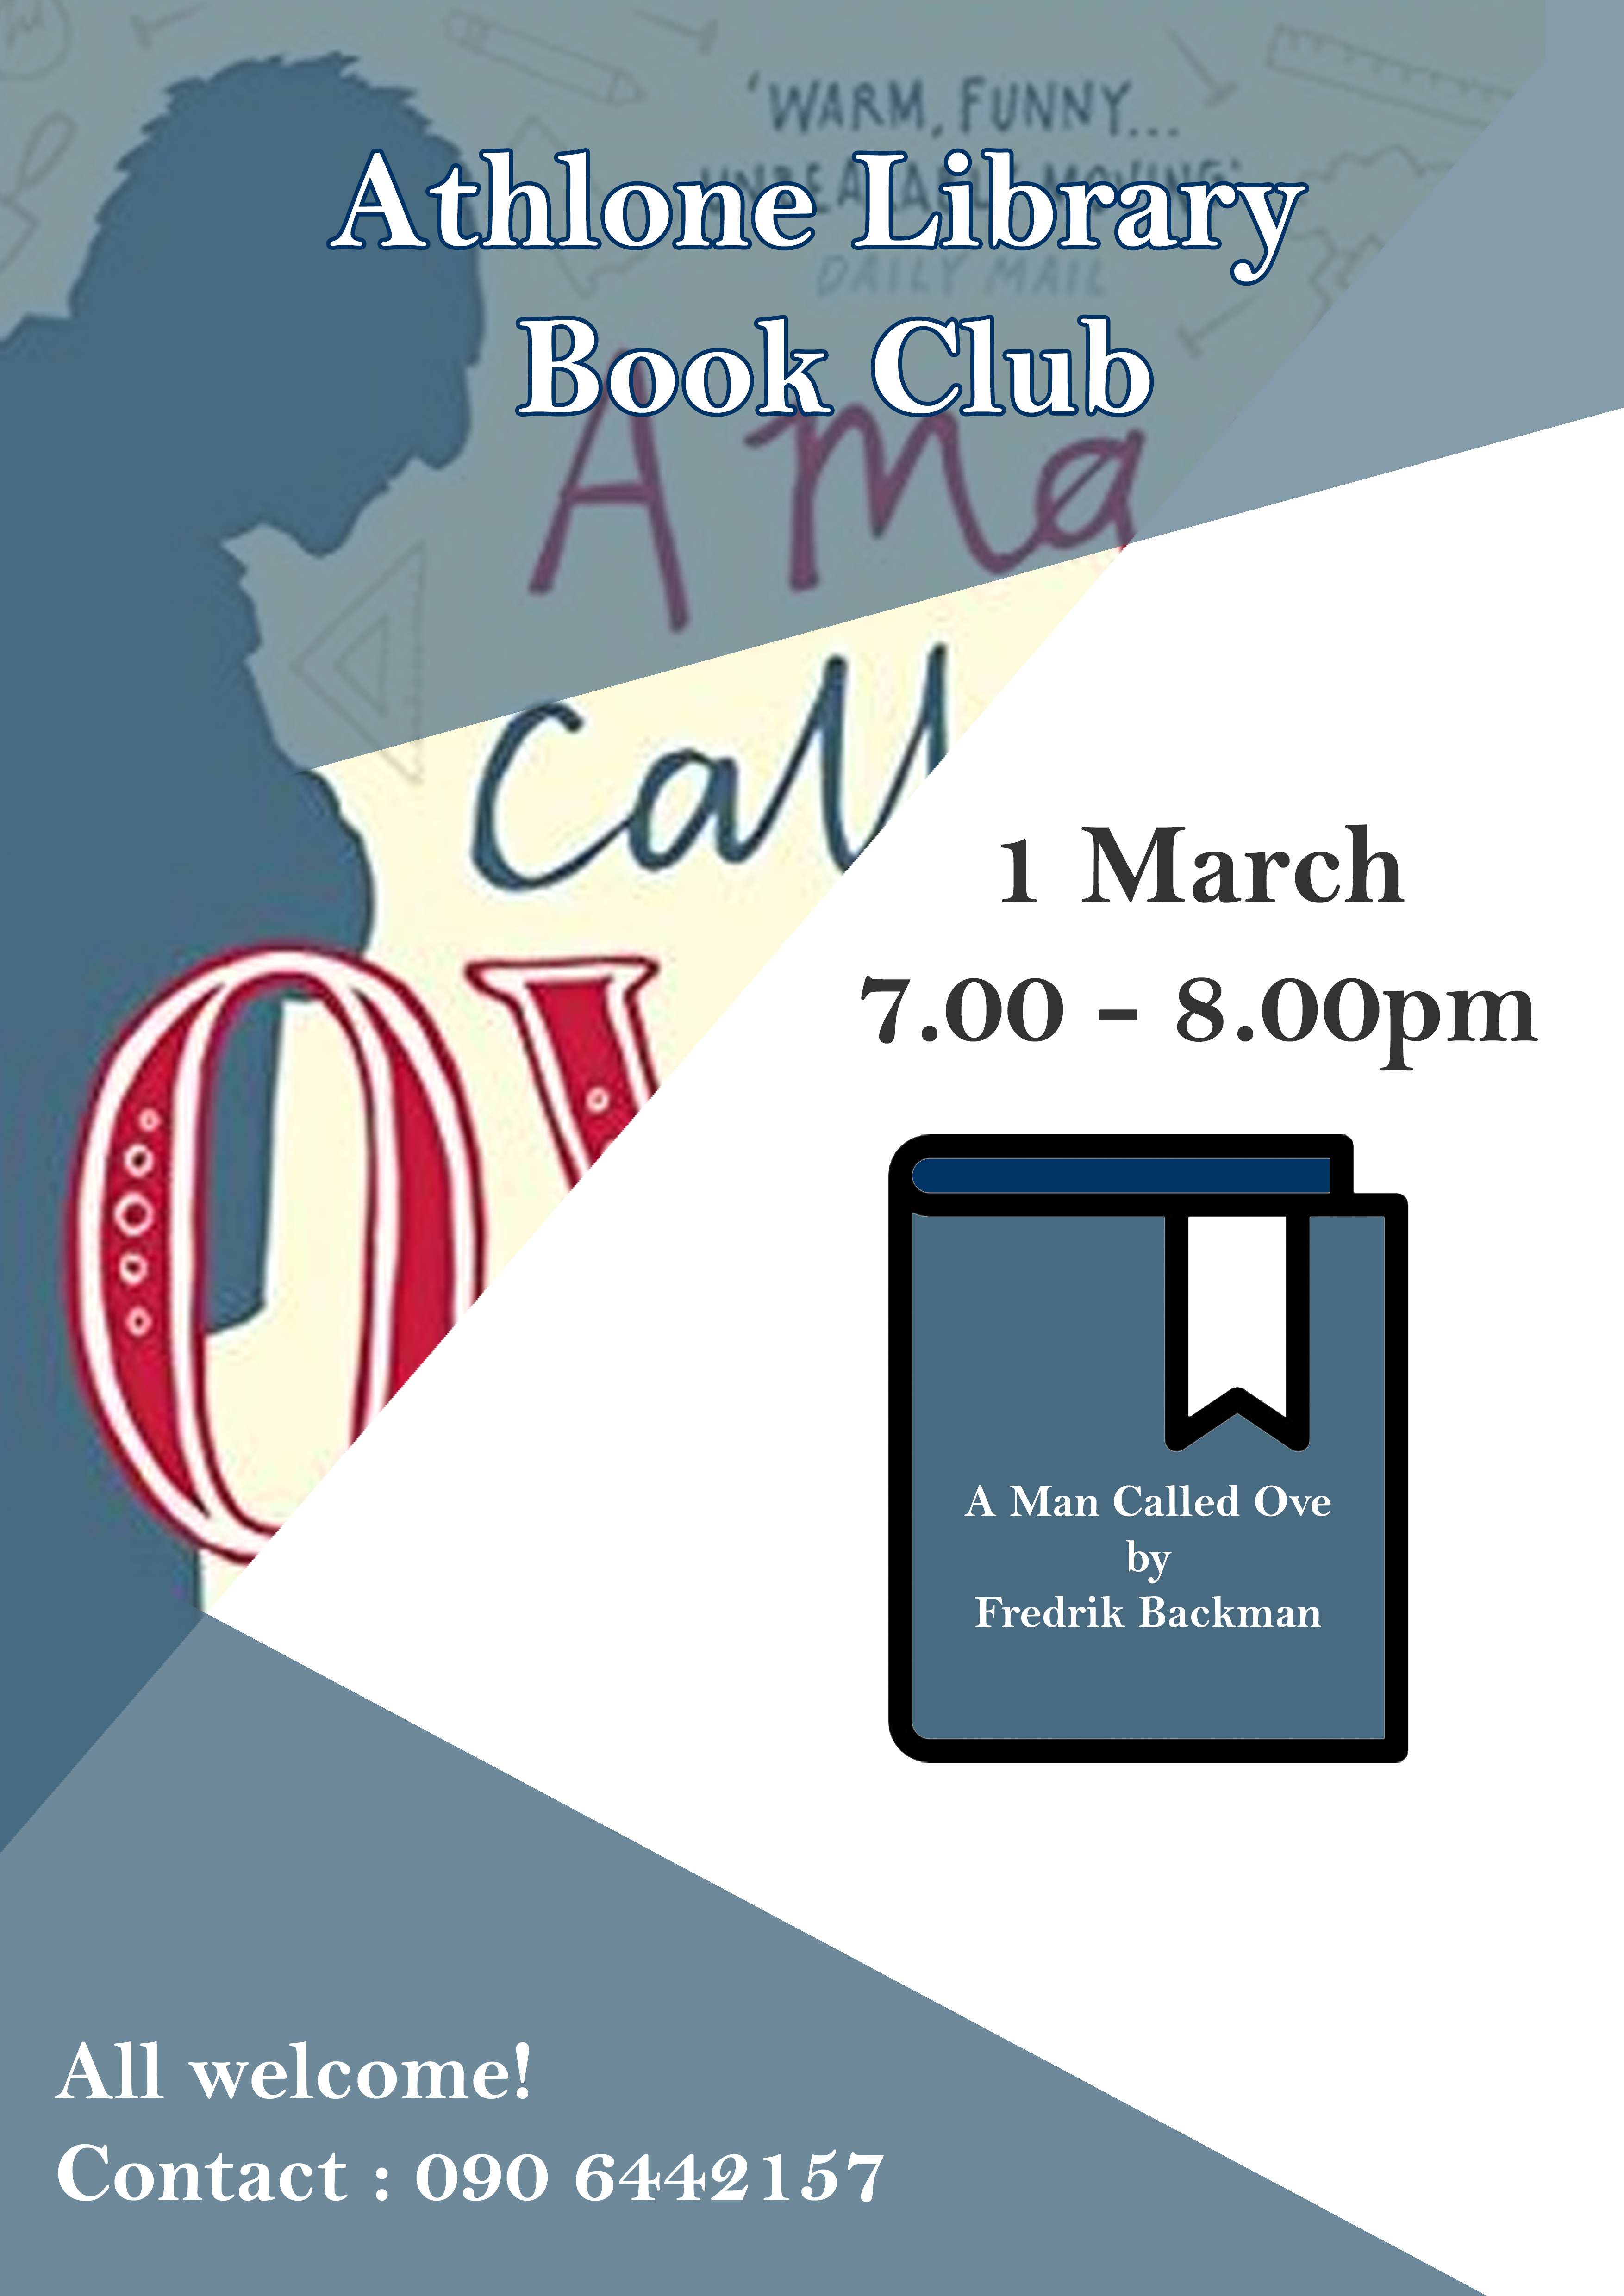 Athlone book club March 2018